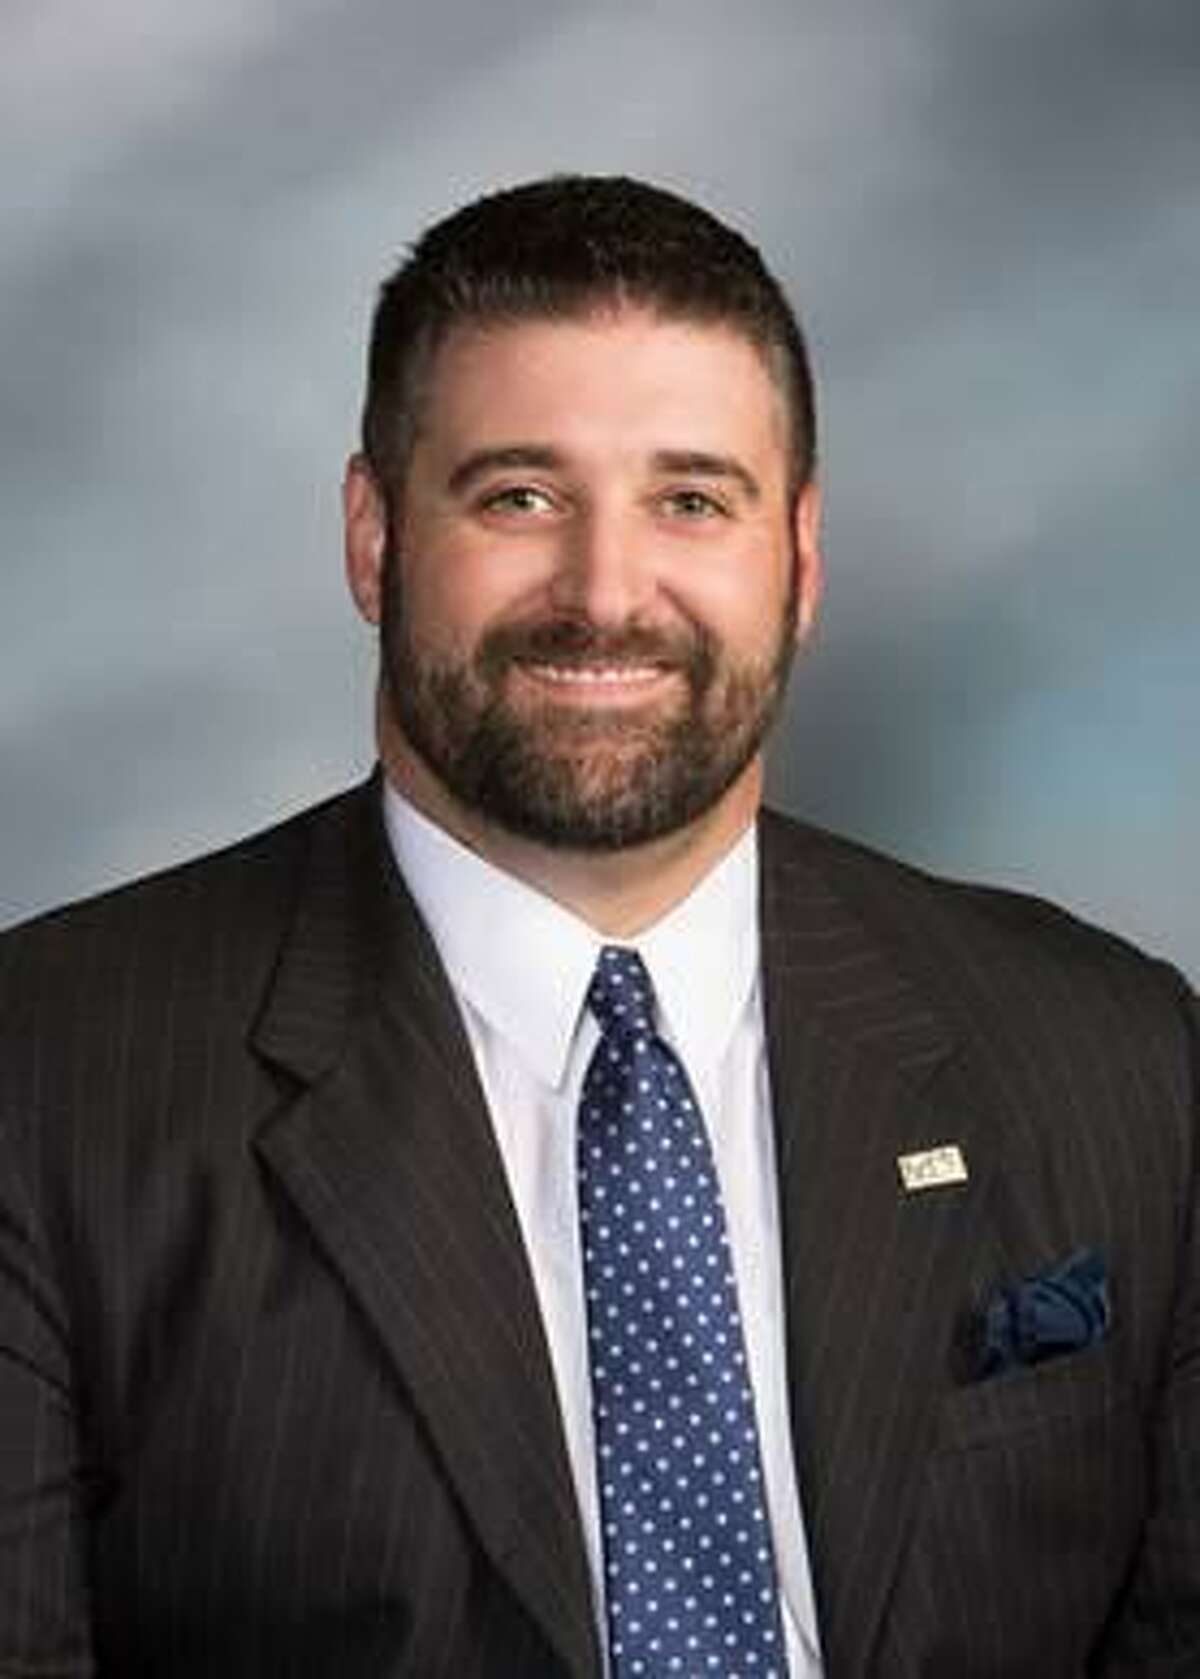 Lance Redmon was elected as vice president of the Katy Independent School District board of trustees during its meeting on Monday, May 17.